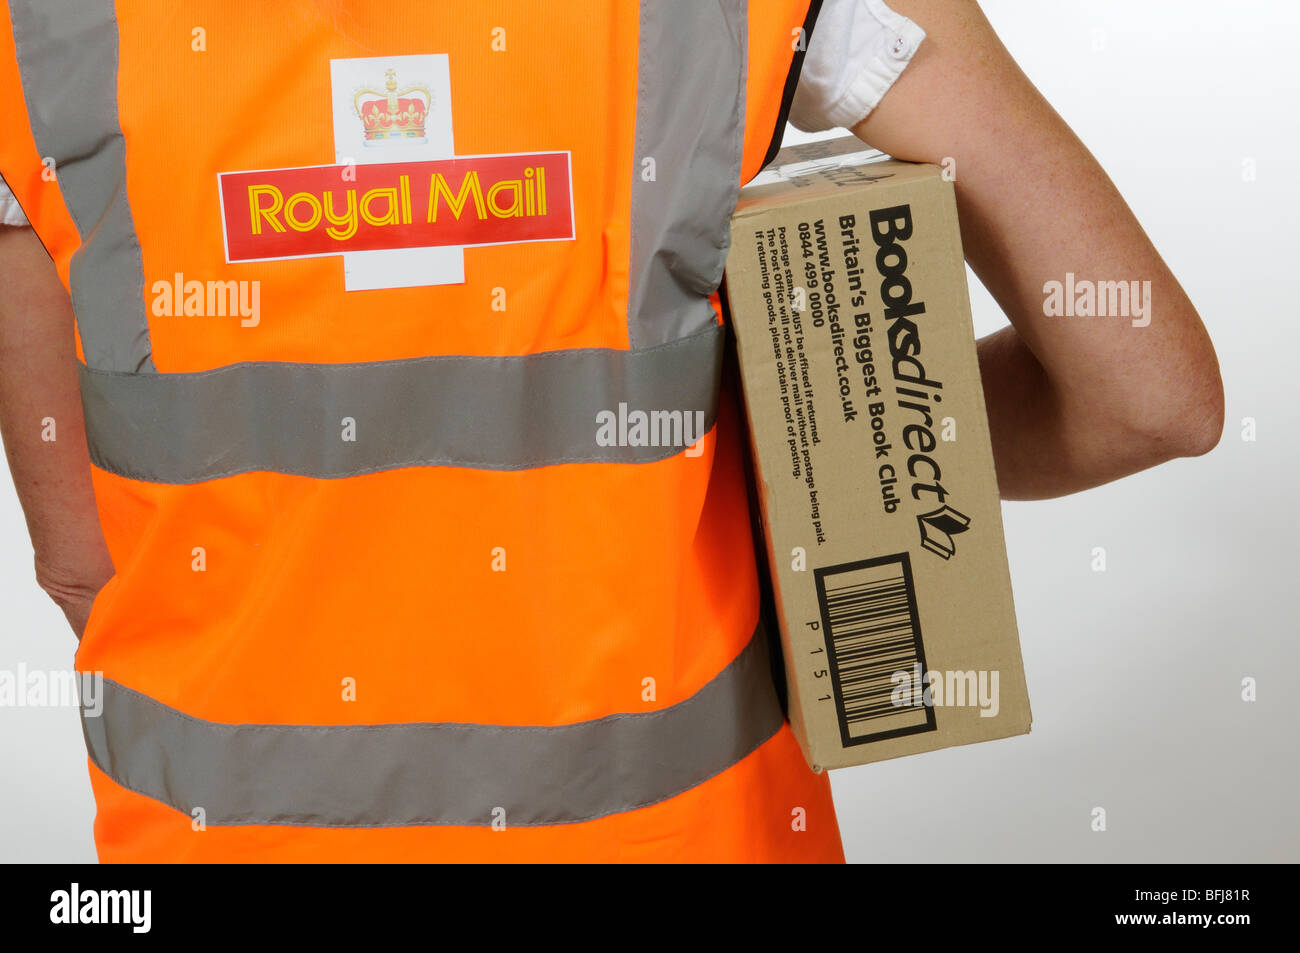 Royal Mail postal service delivery of reading material - Stock Image